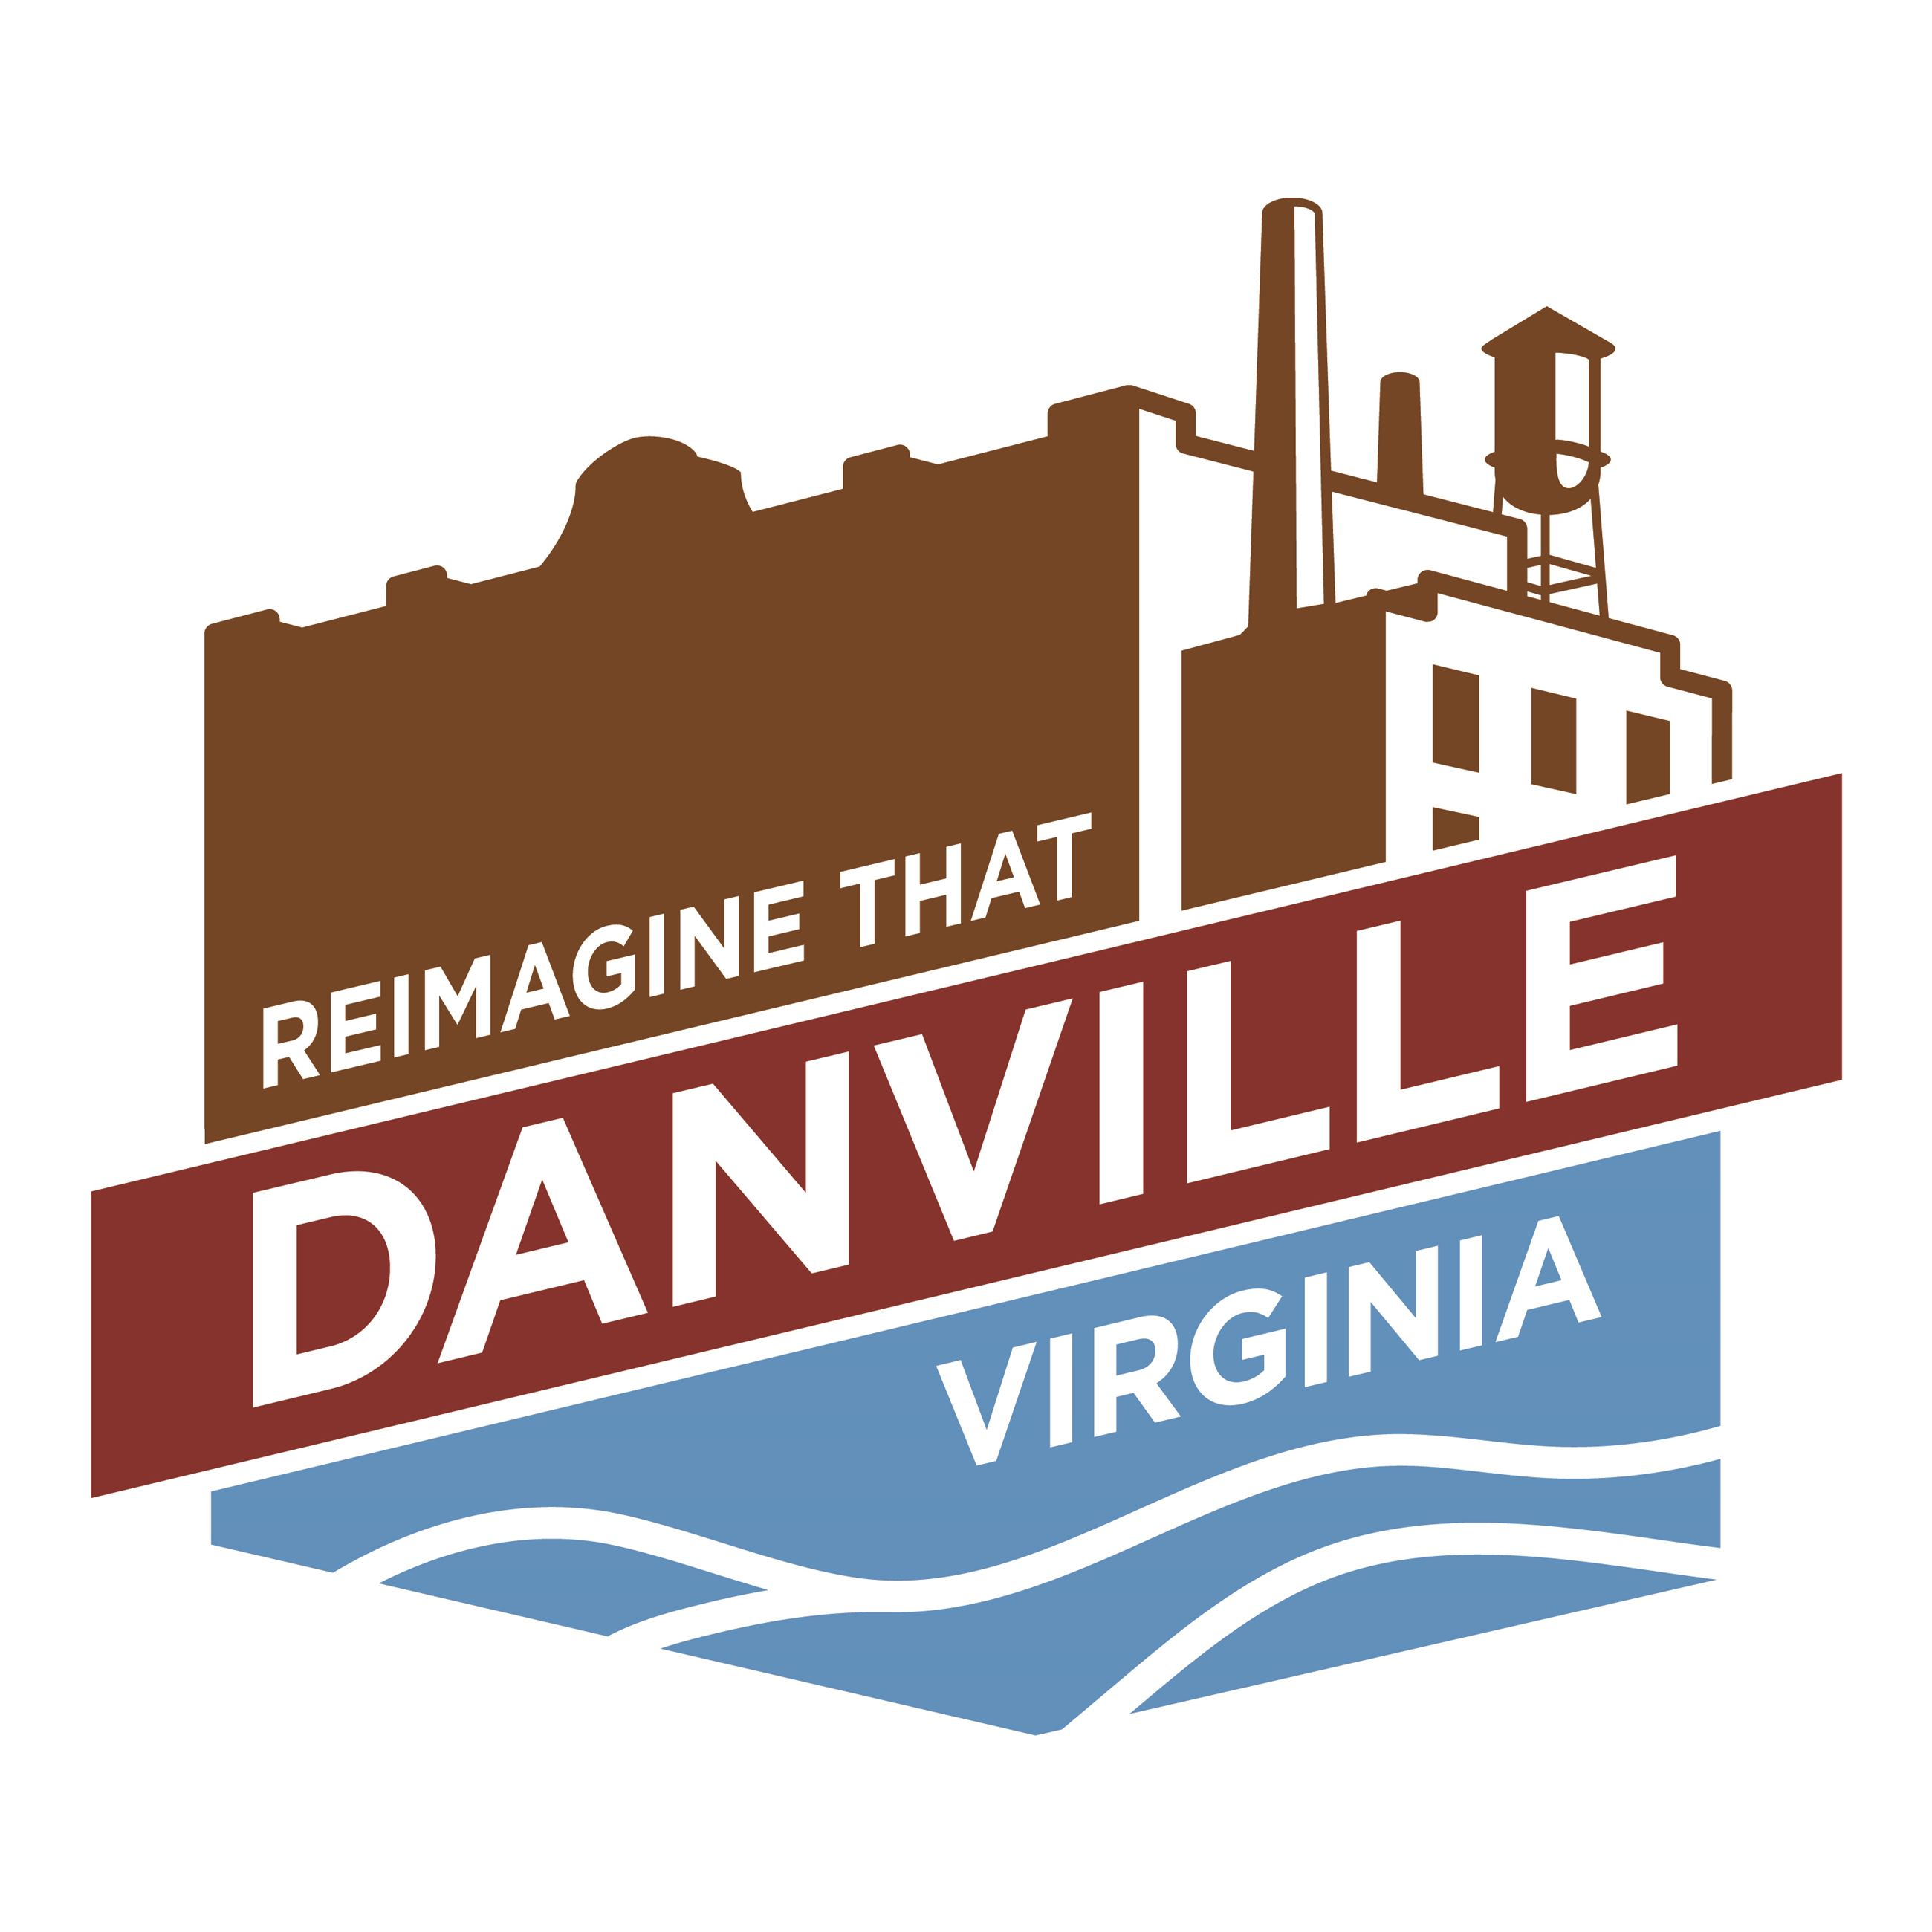 Reimagine That Danville logo